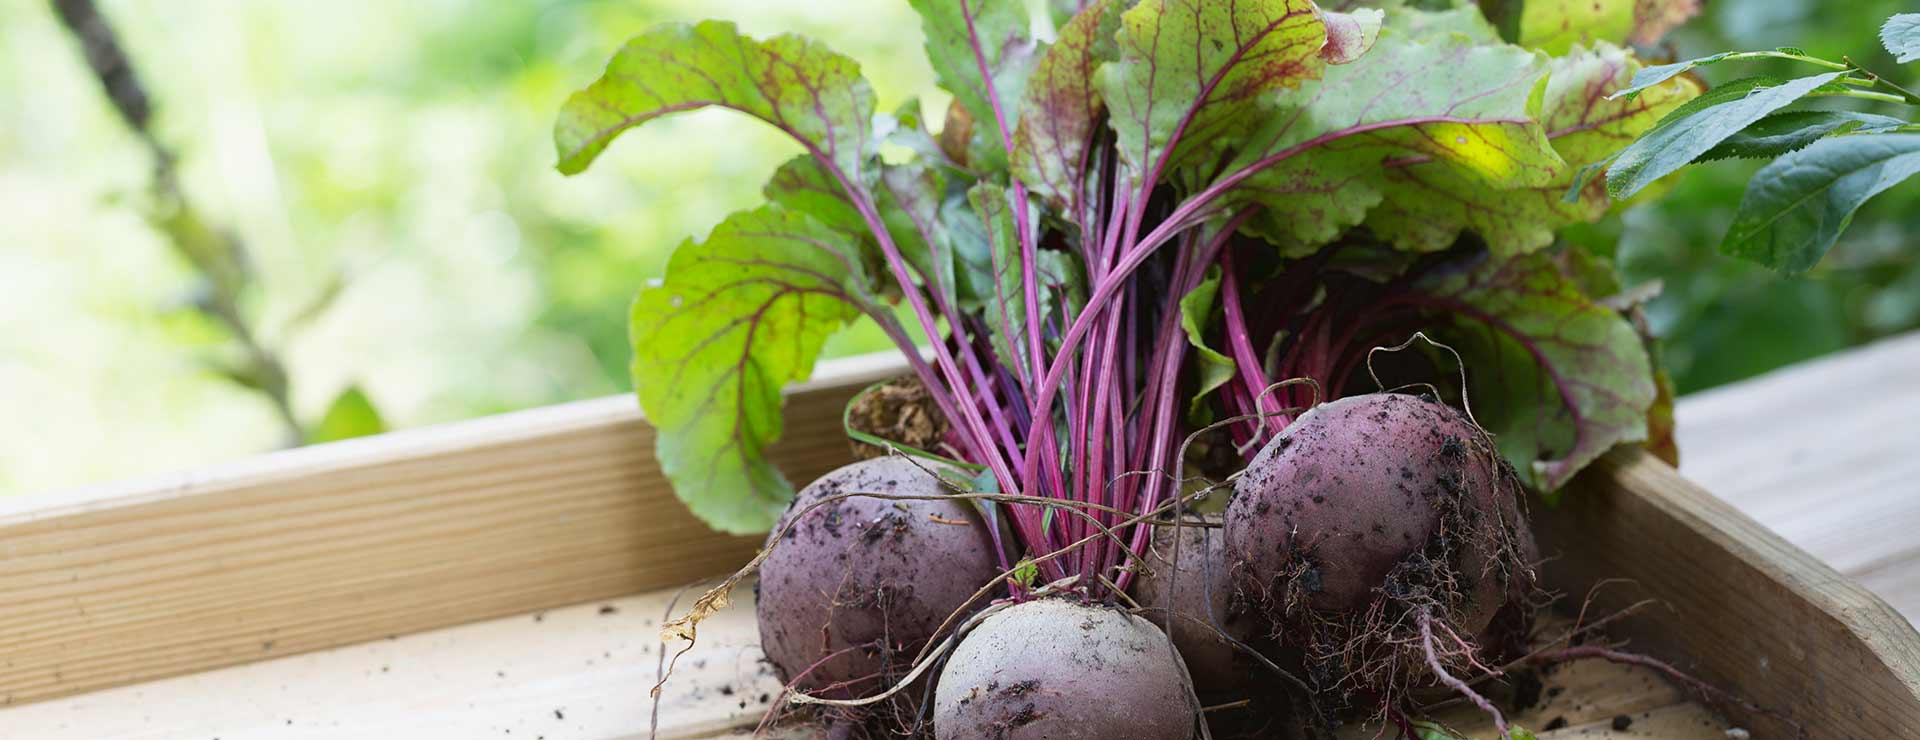 Freshly harvested beets